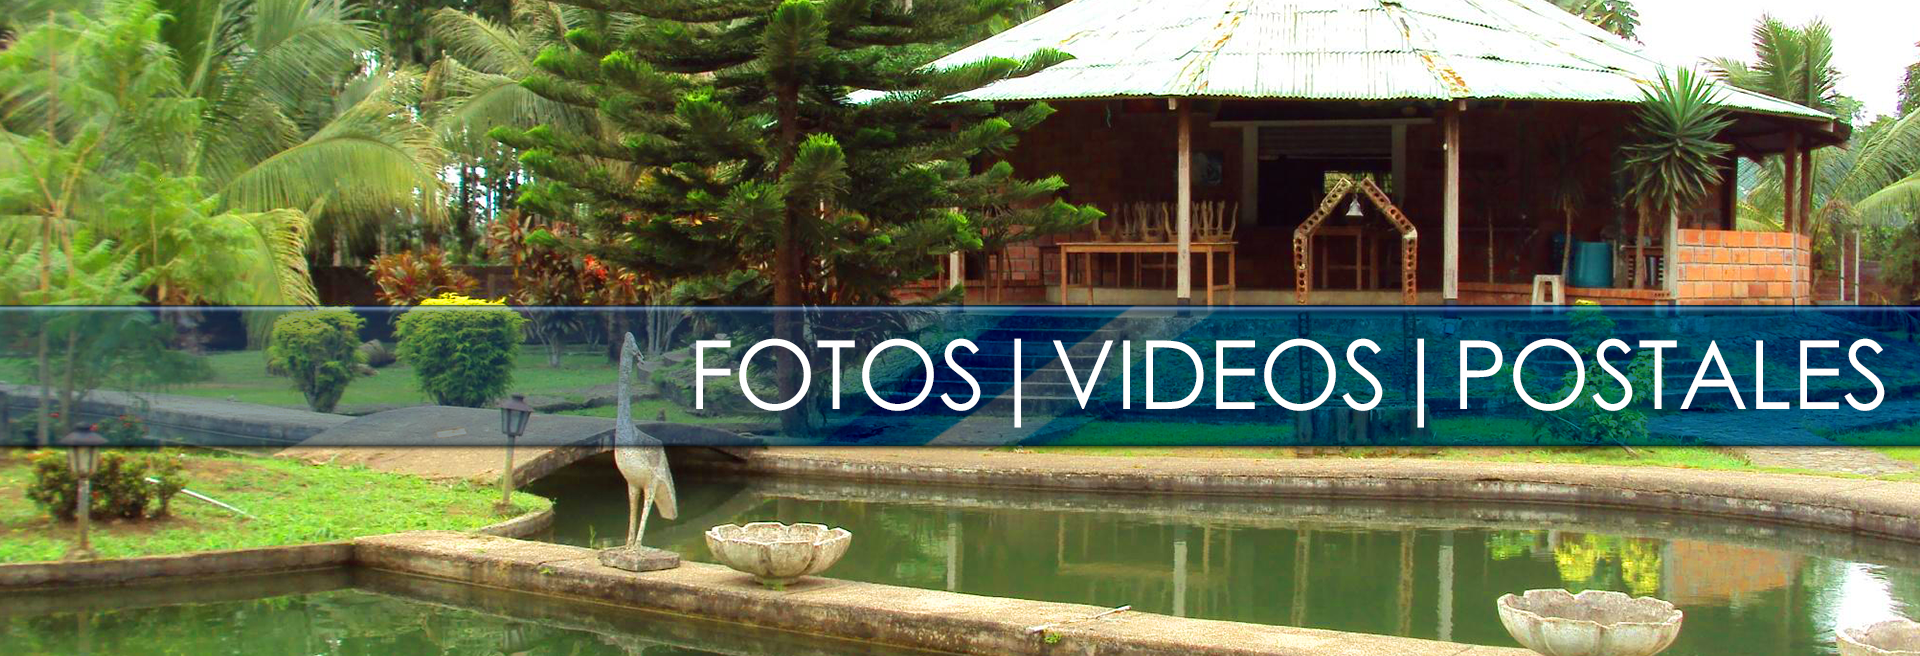 FOTOS-VIDEO-POSTAL